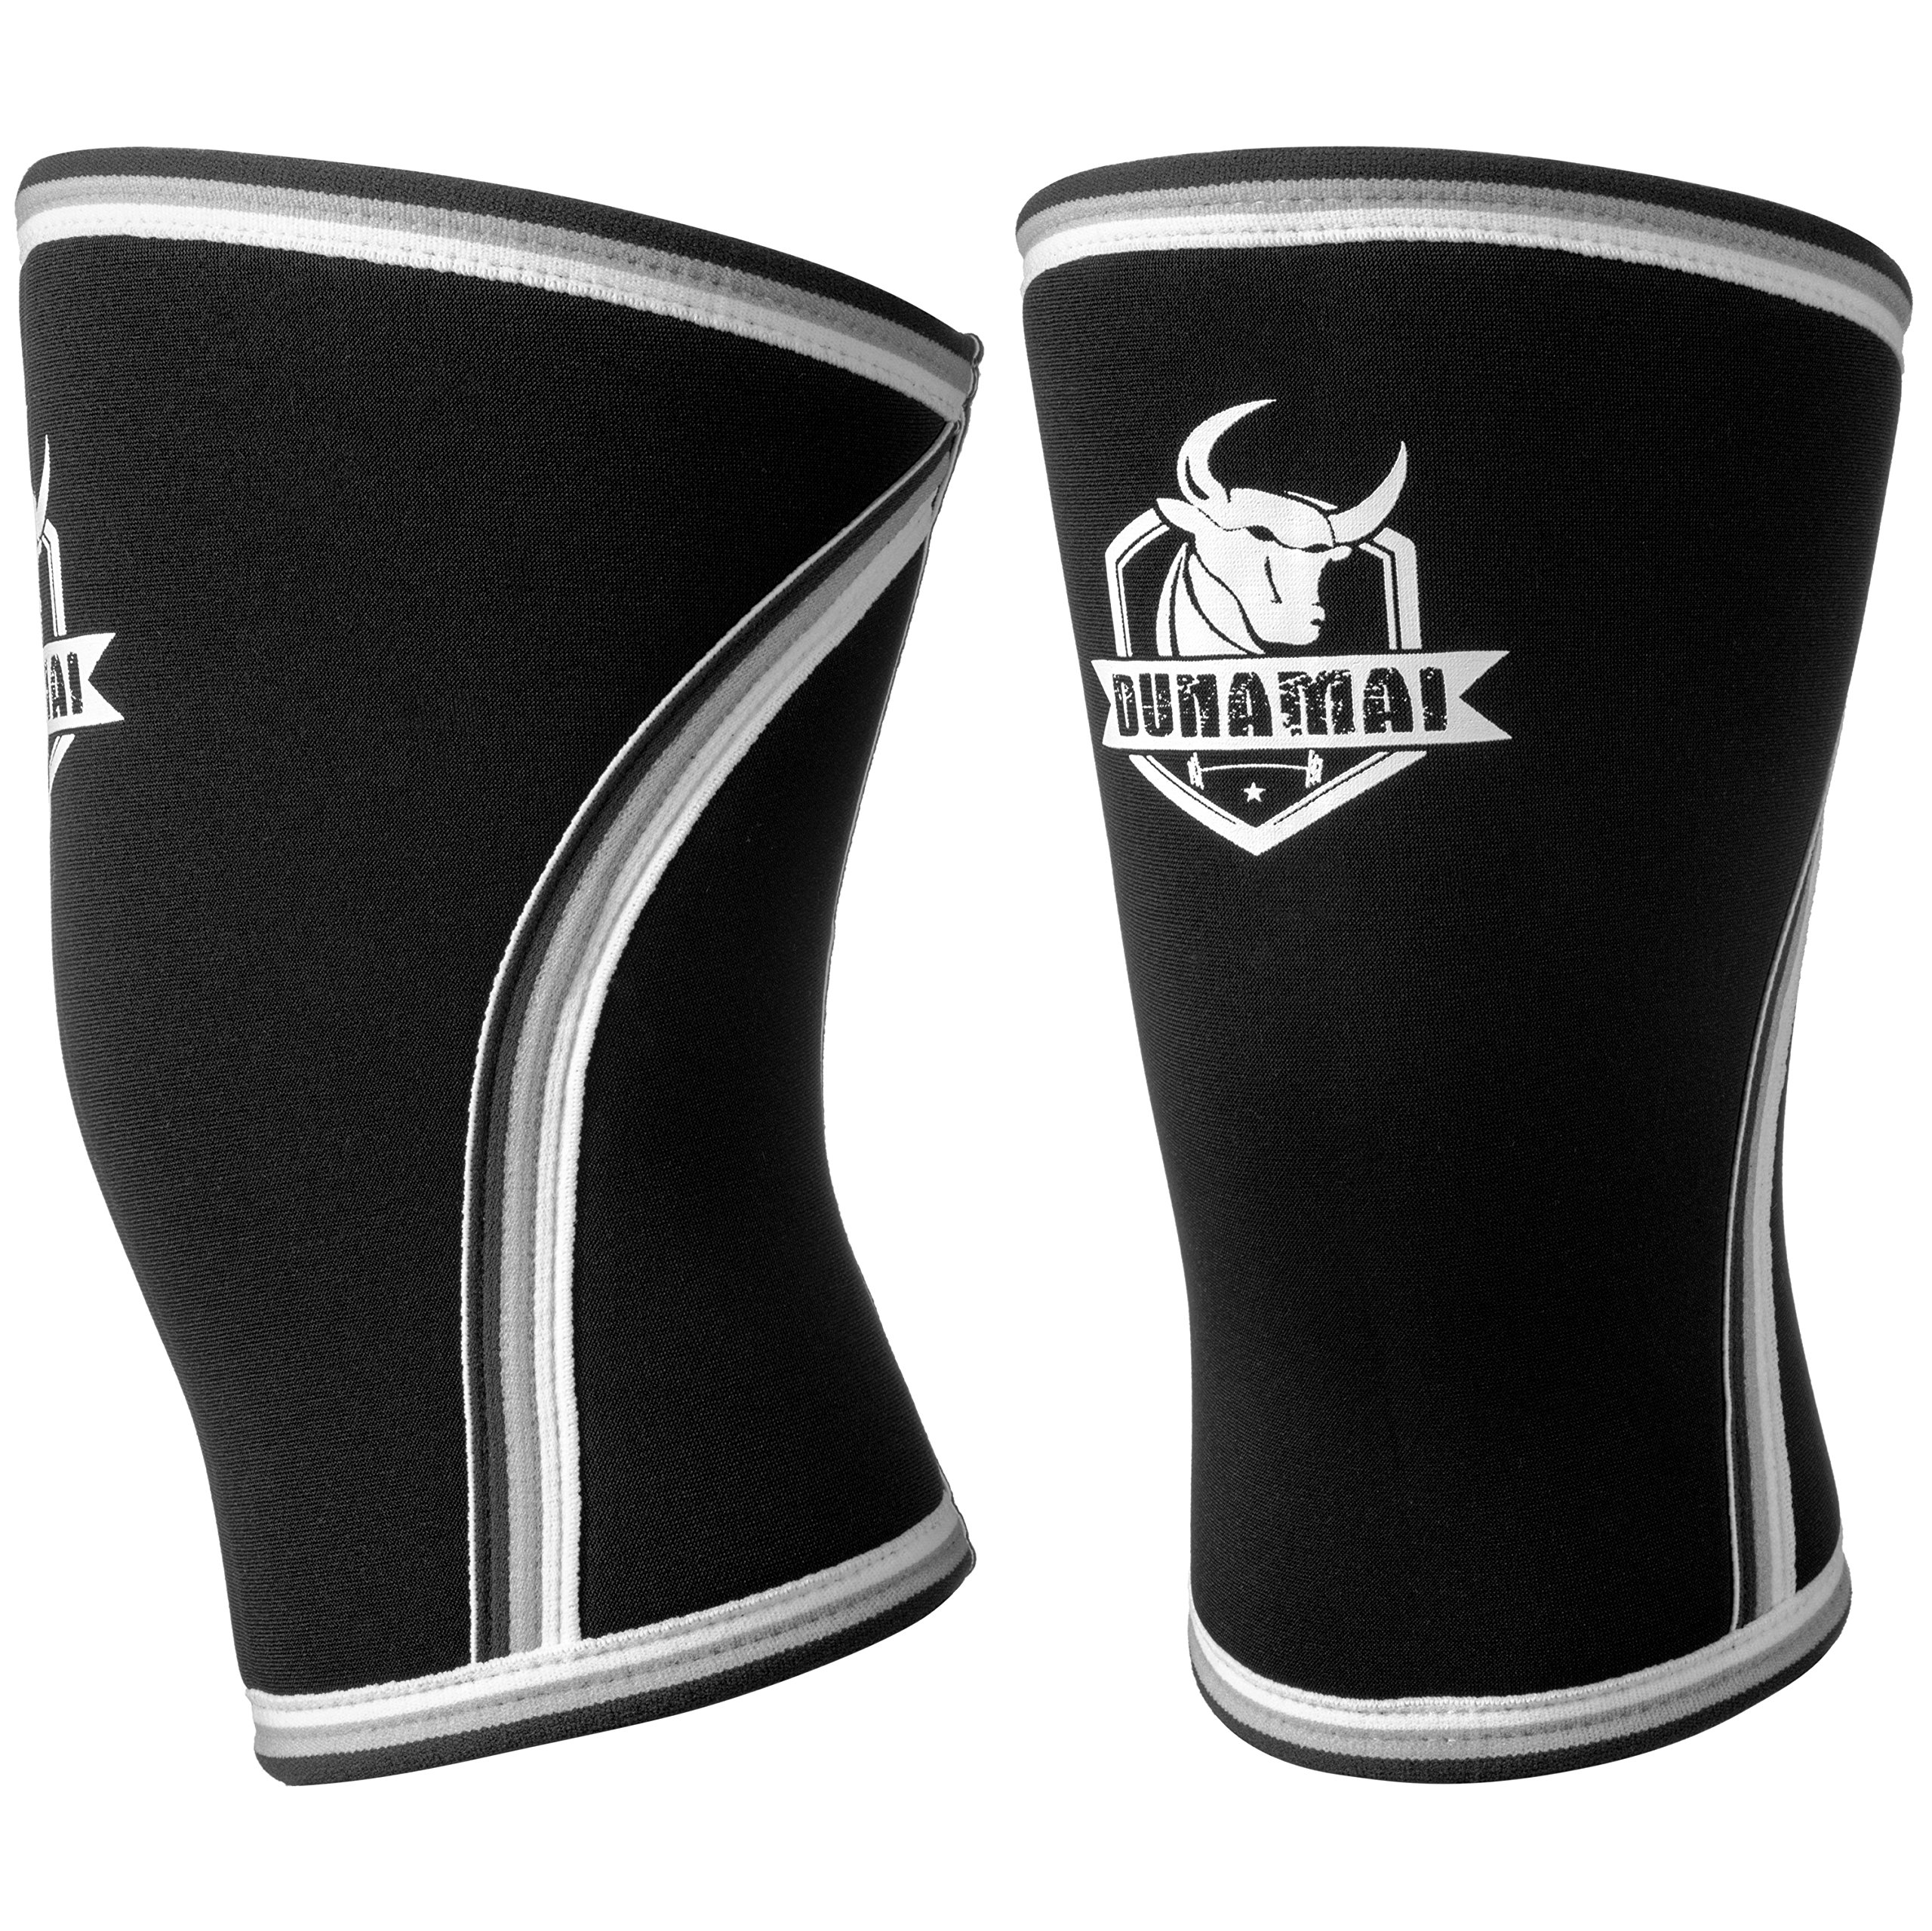 Dunamai Sport 7mm Neoprene Knee Sleeve (1 Pair), 2 Top Compression Sleeves for Powerlifting, Weightlifting and Crossfit, Wraps for Both Women and Men, Knee Brace for Ultimate Support and Protection.